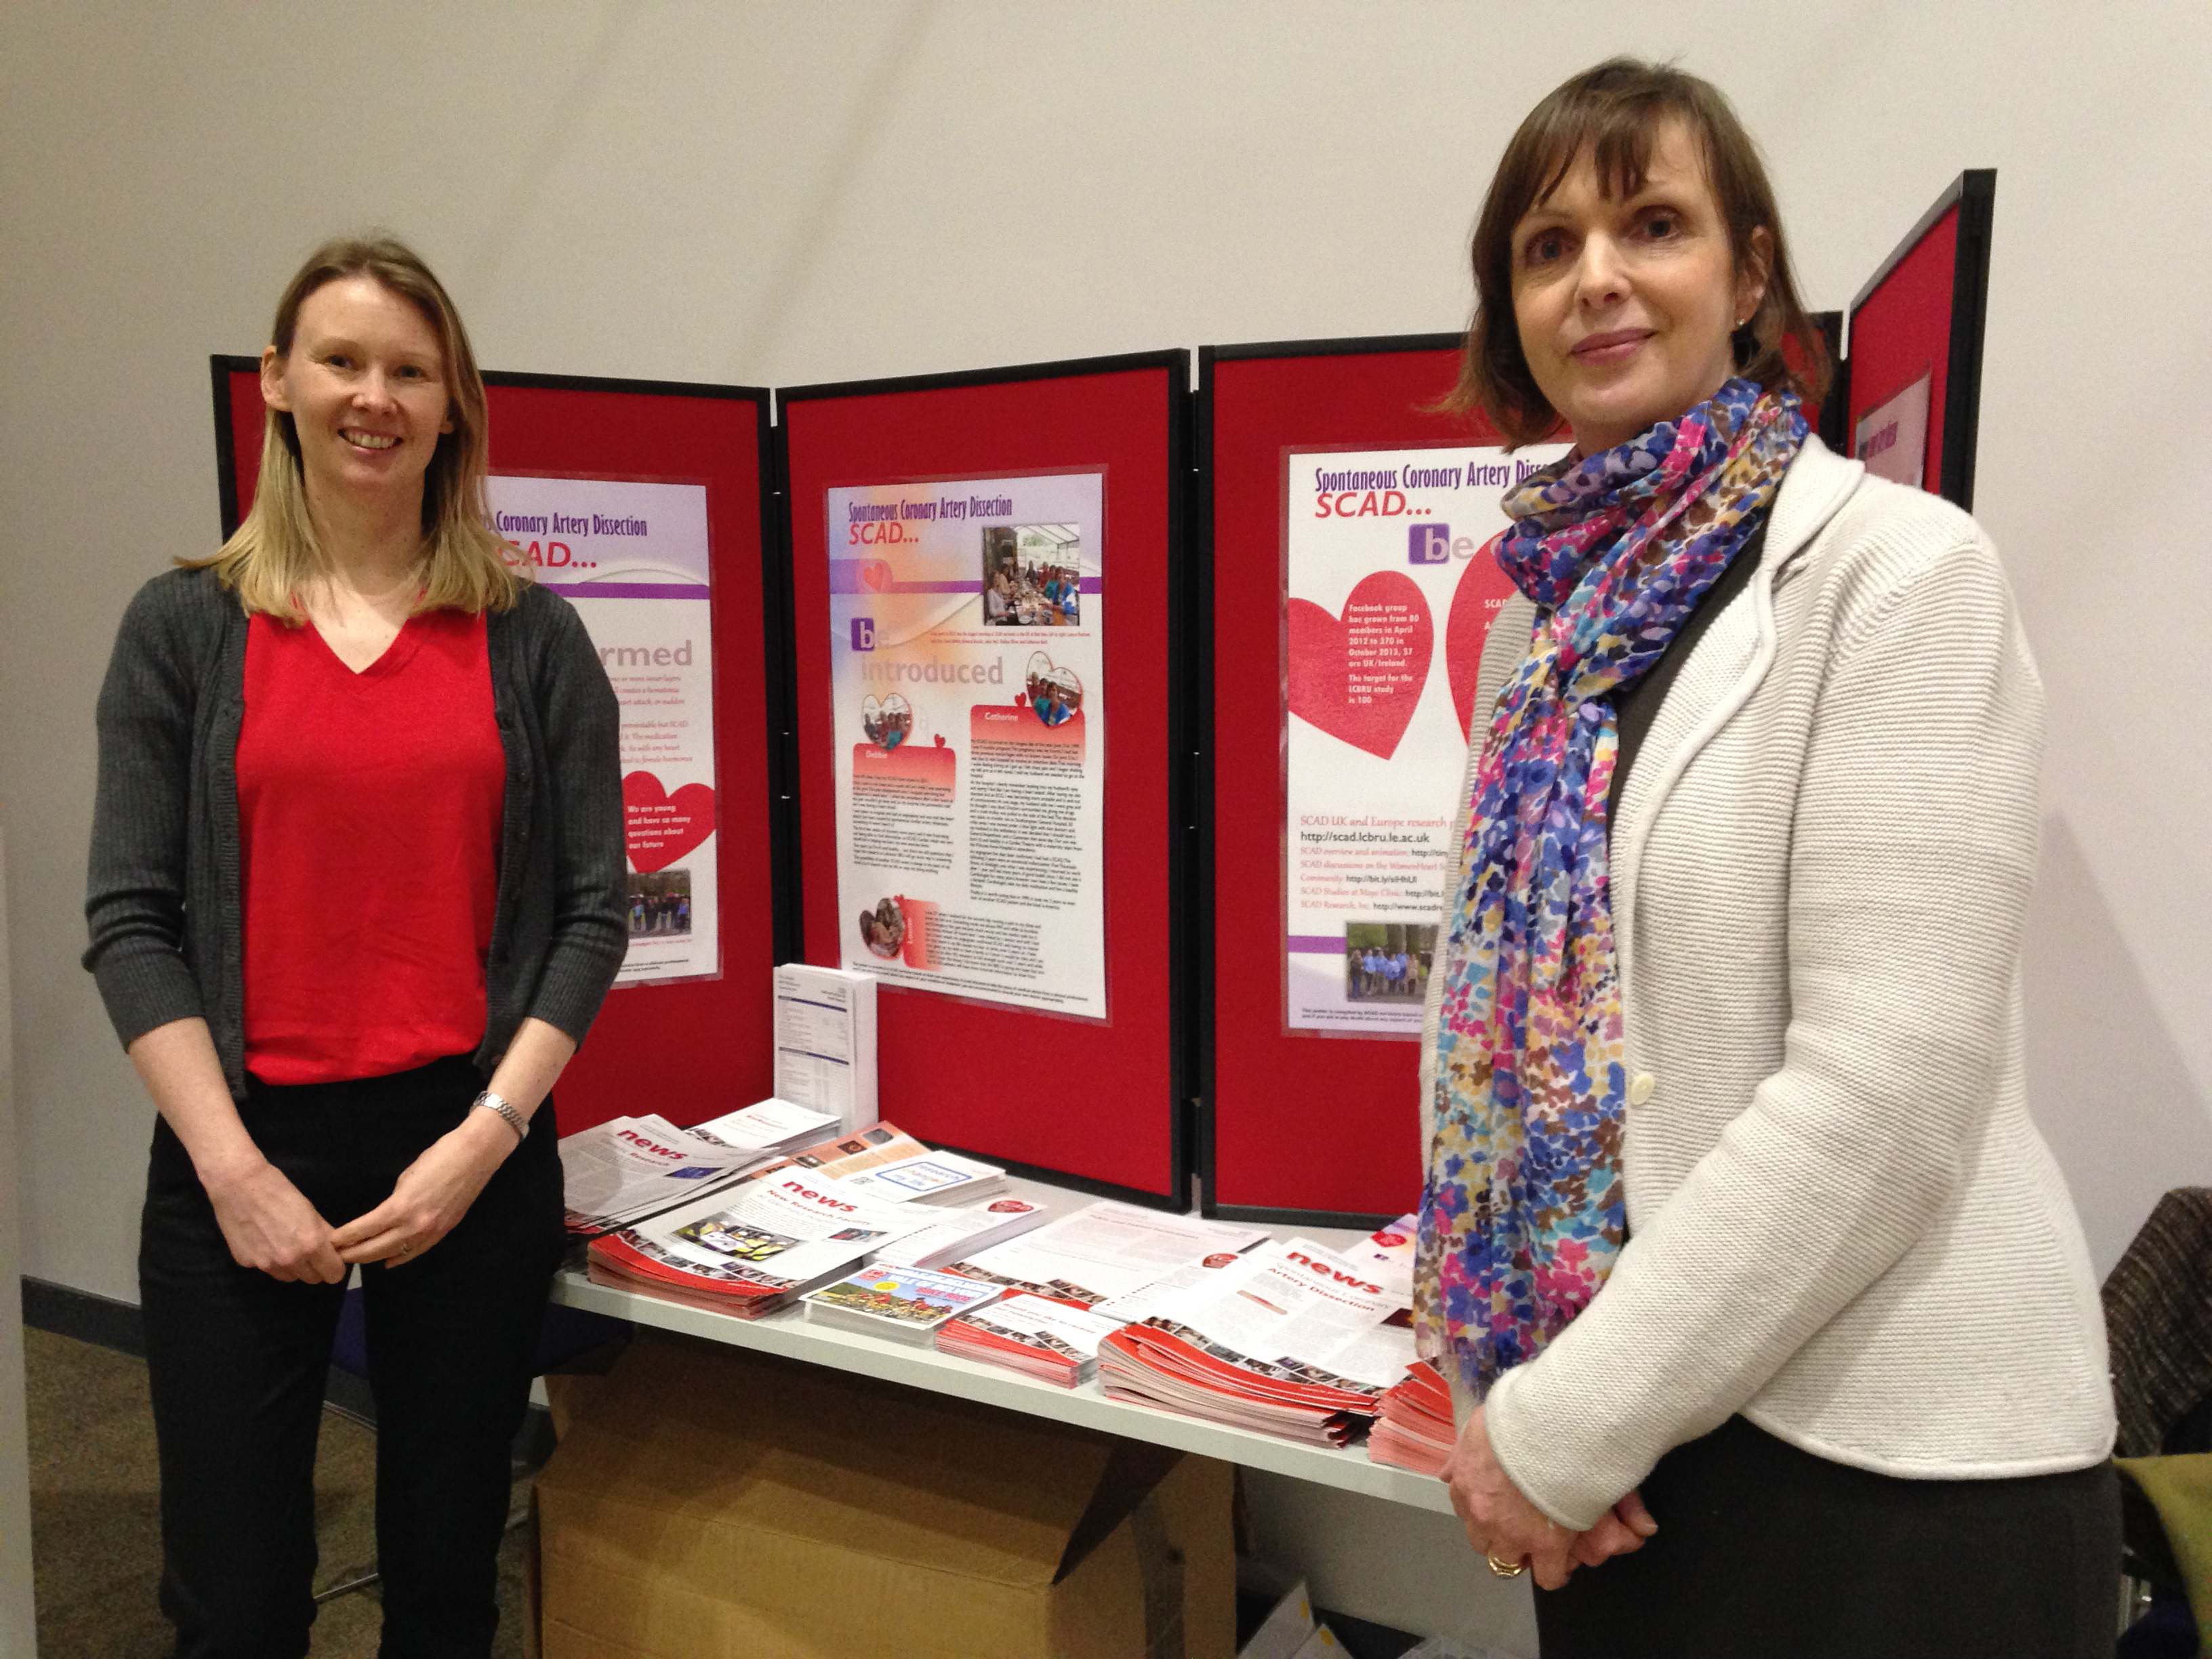 Rebecca Breslin (left) and Catherine Beck at the LCBRU stand that featured posters and leaflets designed by SCAD patients